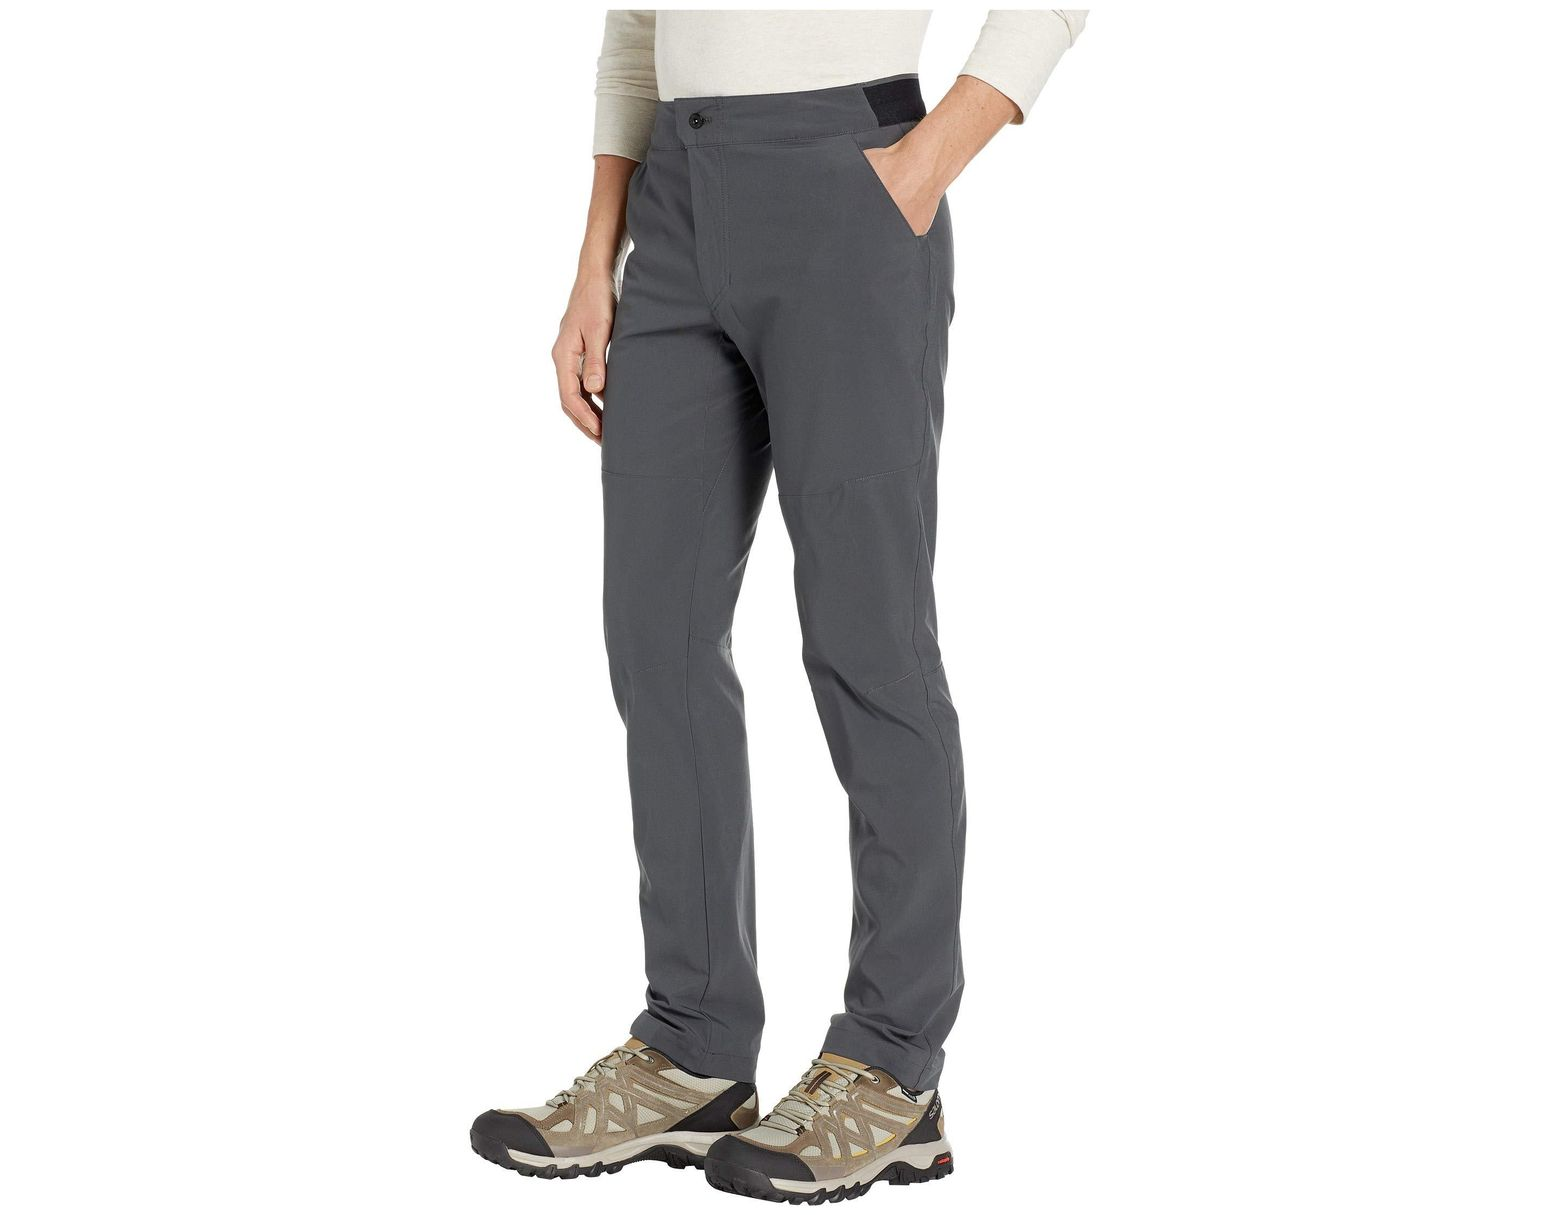 a2c4037dc The North Face Paramount Active Convertible Pants (dune Beige) Men s Casual  Pants in Gray for Men - Save 13% - Lyst